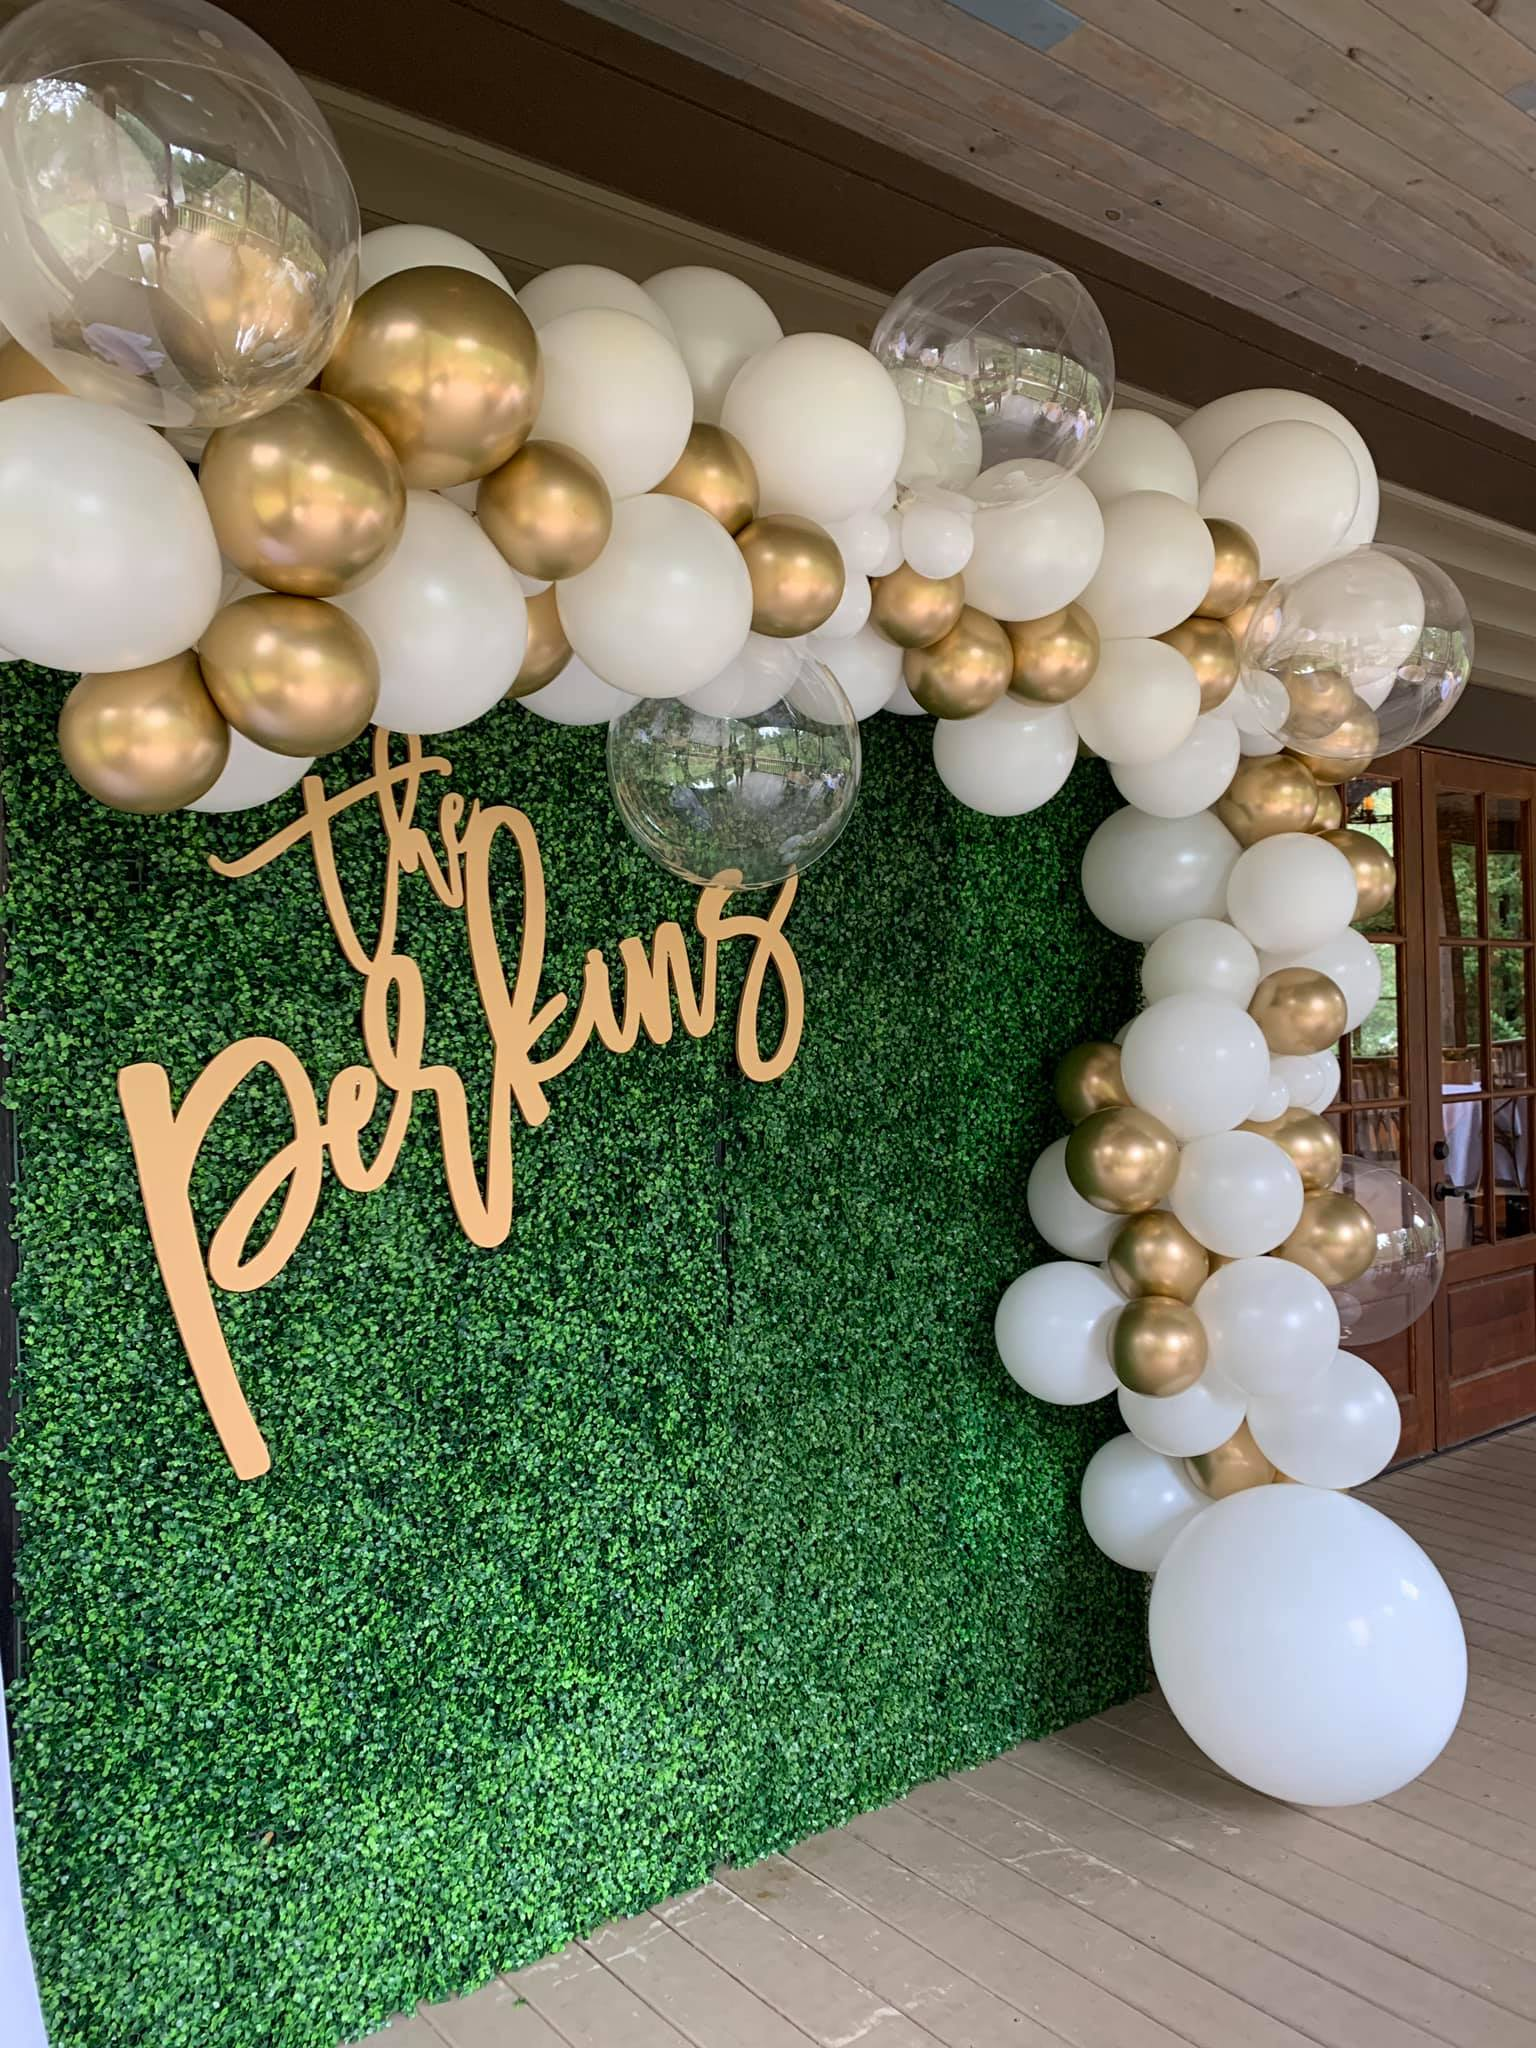 Balloon garland with clear, white and gold balloons.